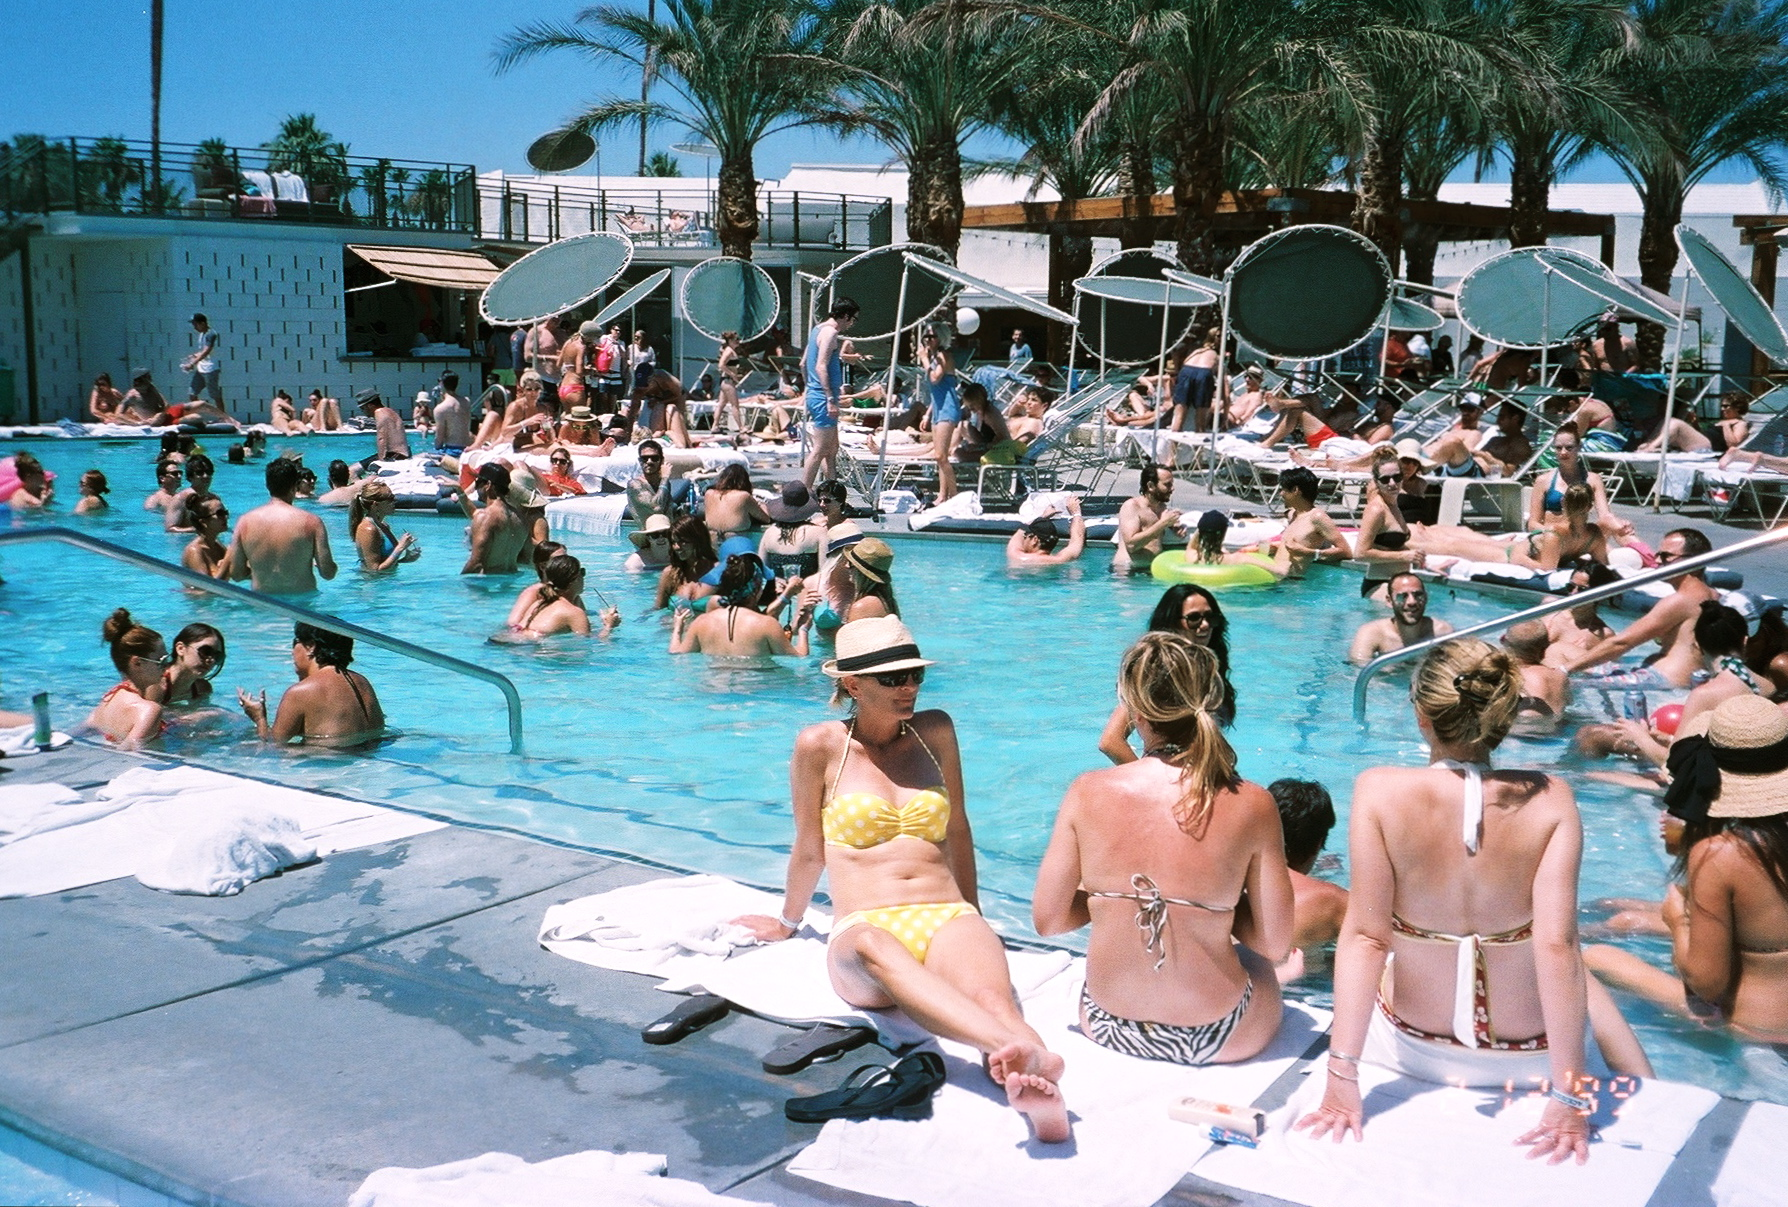 World Famous Pool Party At The Ace Hotel With Alf Alpha And Coachella Valley Art